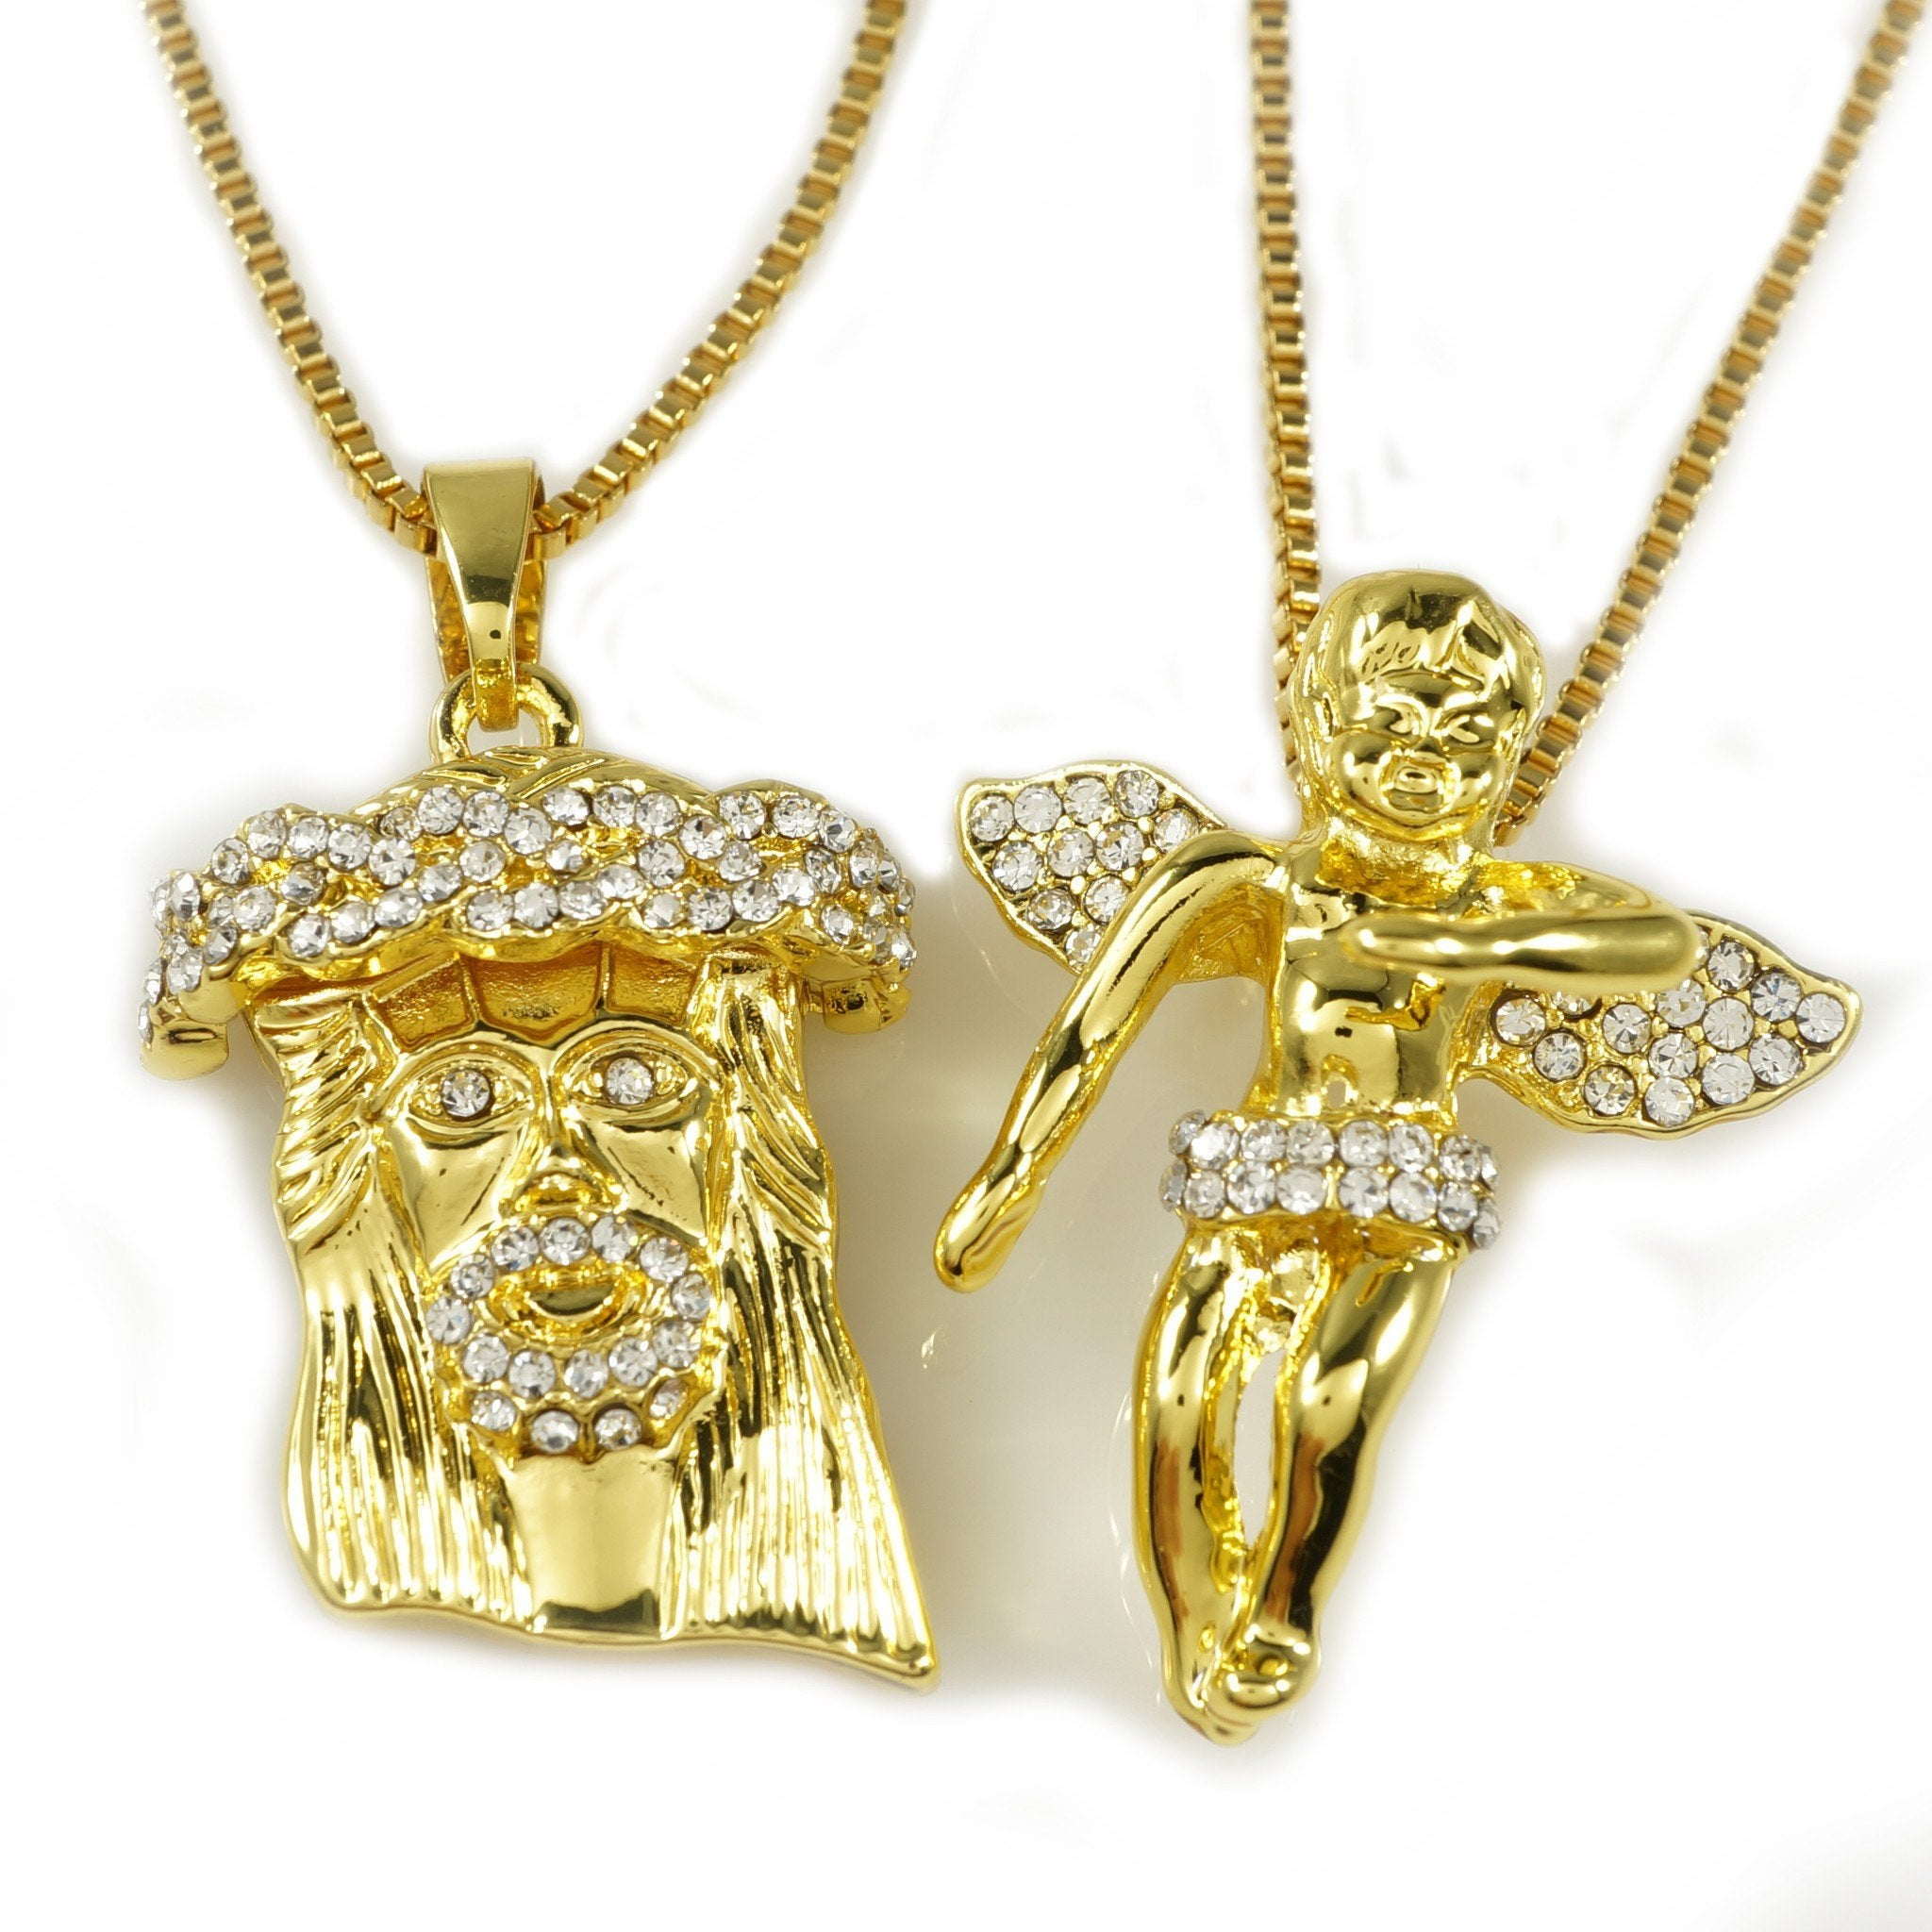 Affordable 18k Iced Out Gold Angel And Jesus Piece Combo With Box Hip Hop Chain - White Background